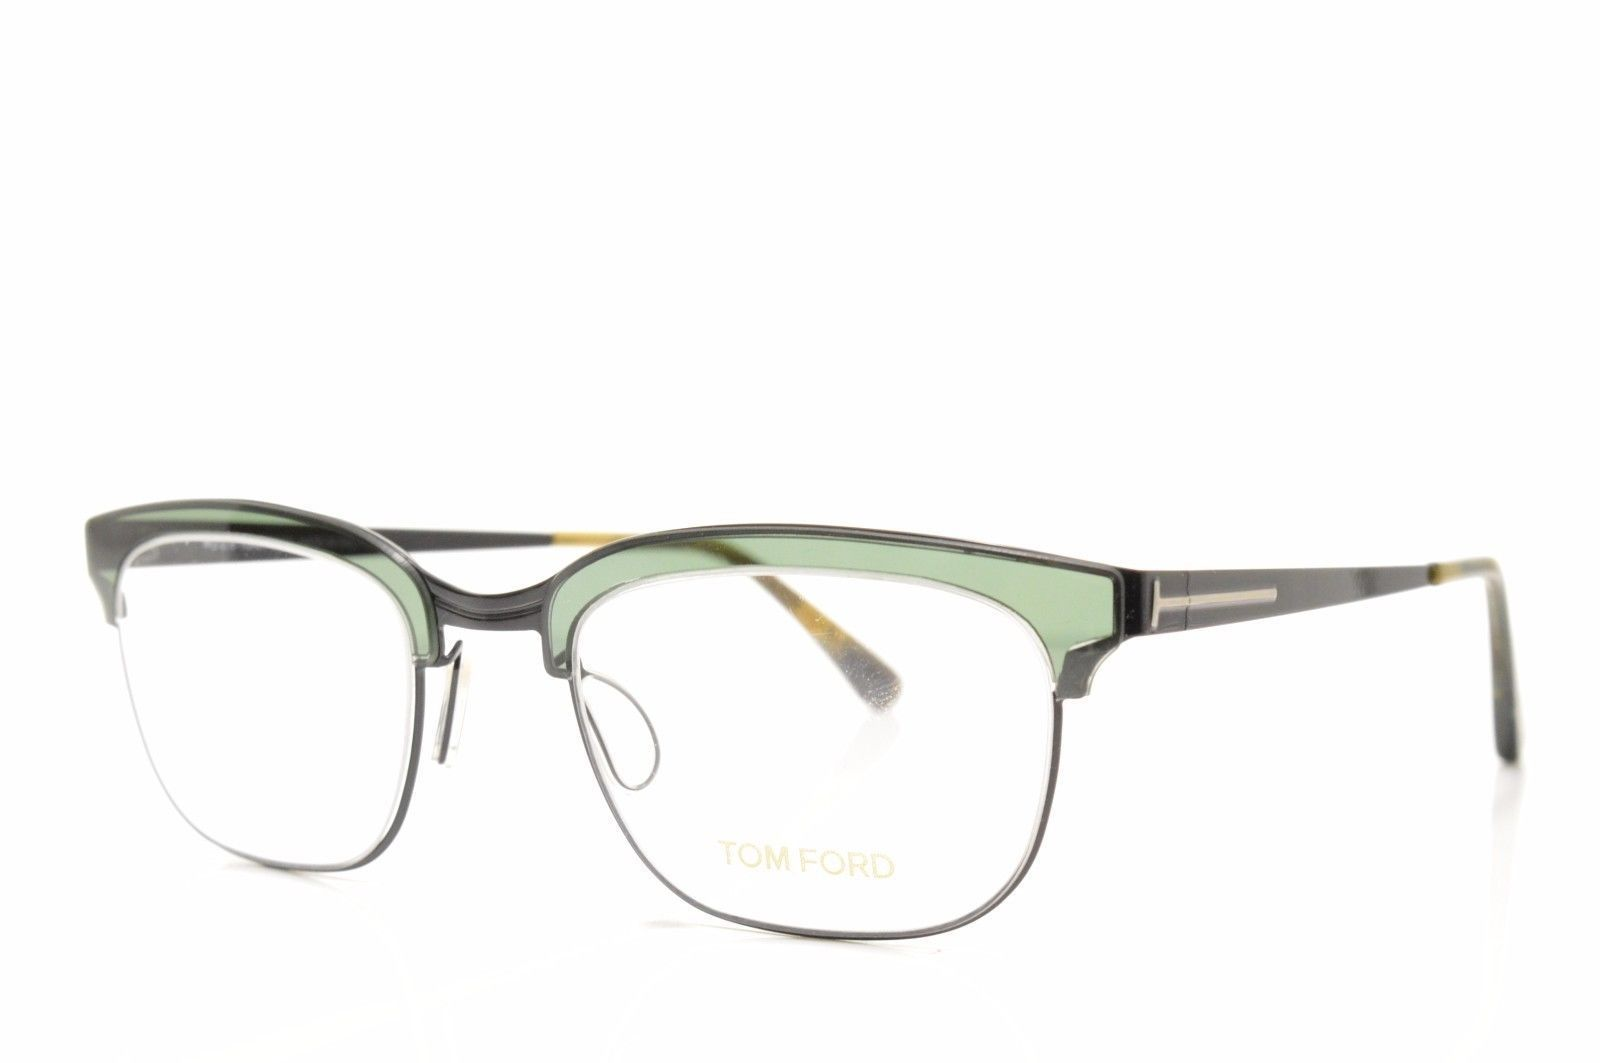 c4d4071d467ff New Tom Ford TF 5393 098 green crystal   and 50 similar items. S l1600